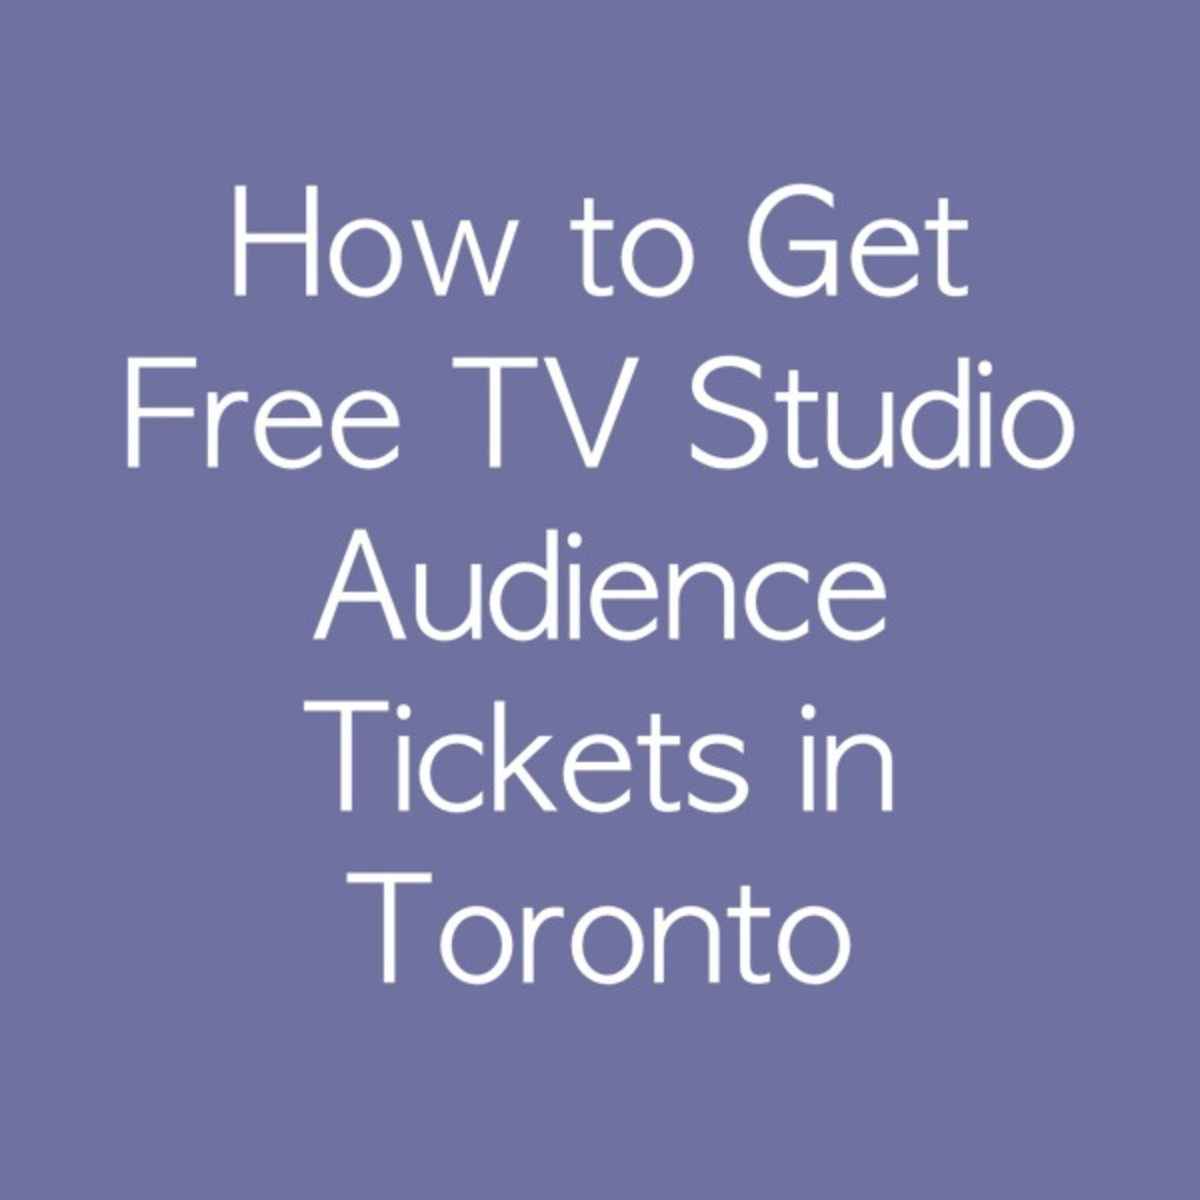 How to Get Free TV Studio Audience Tickets in Toronto